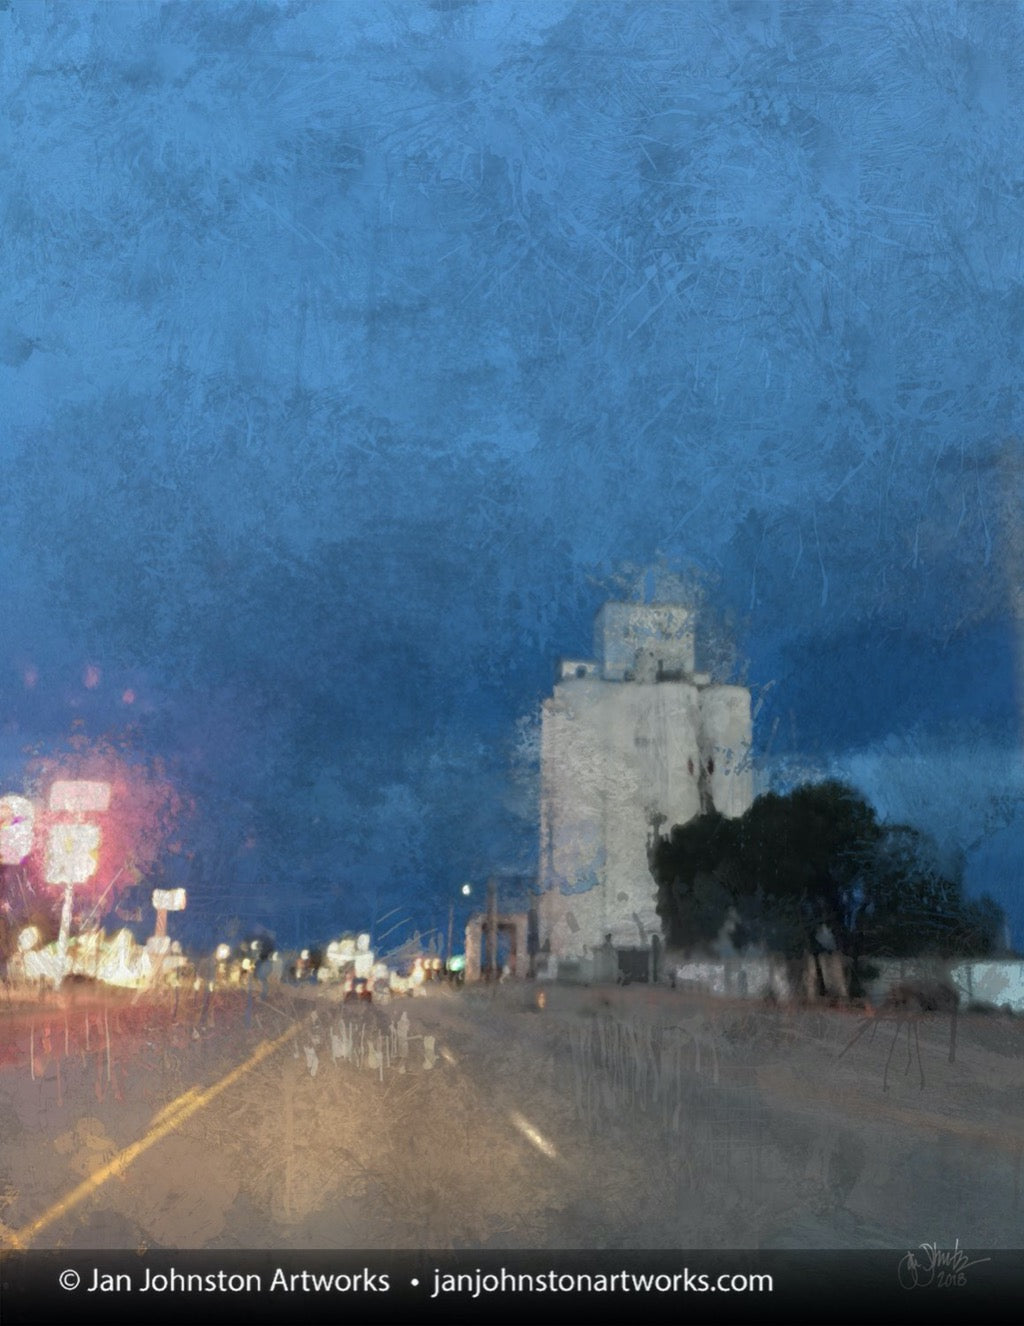 Night Rain in a Small Town